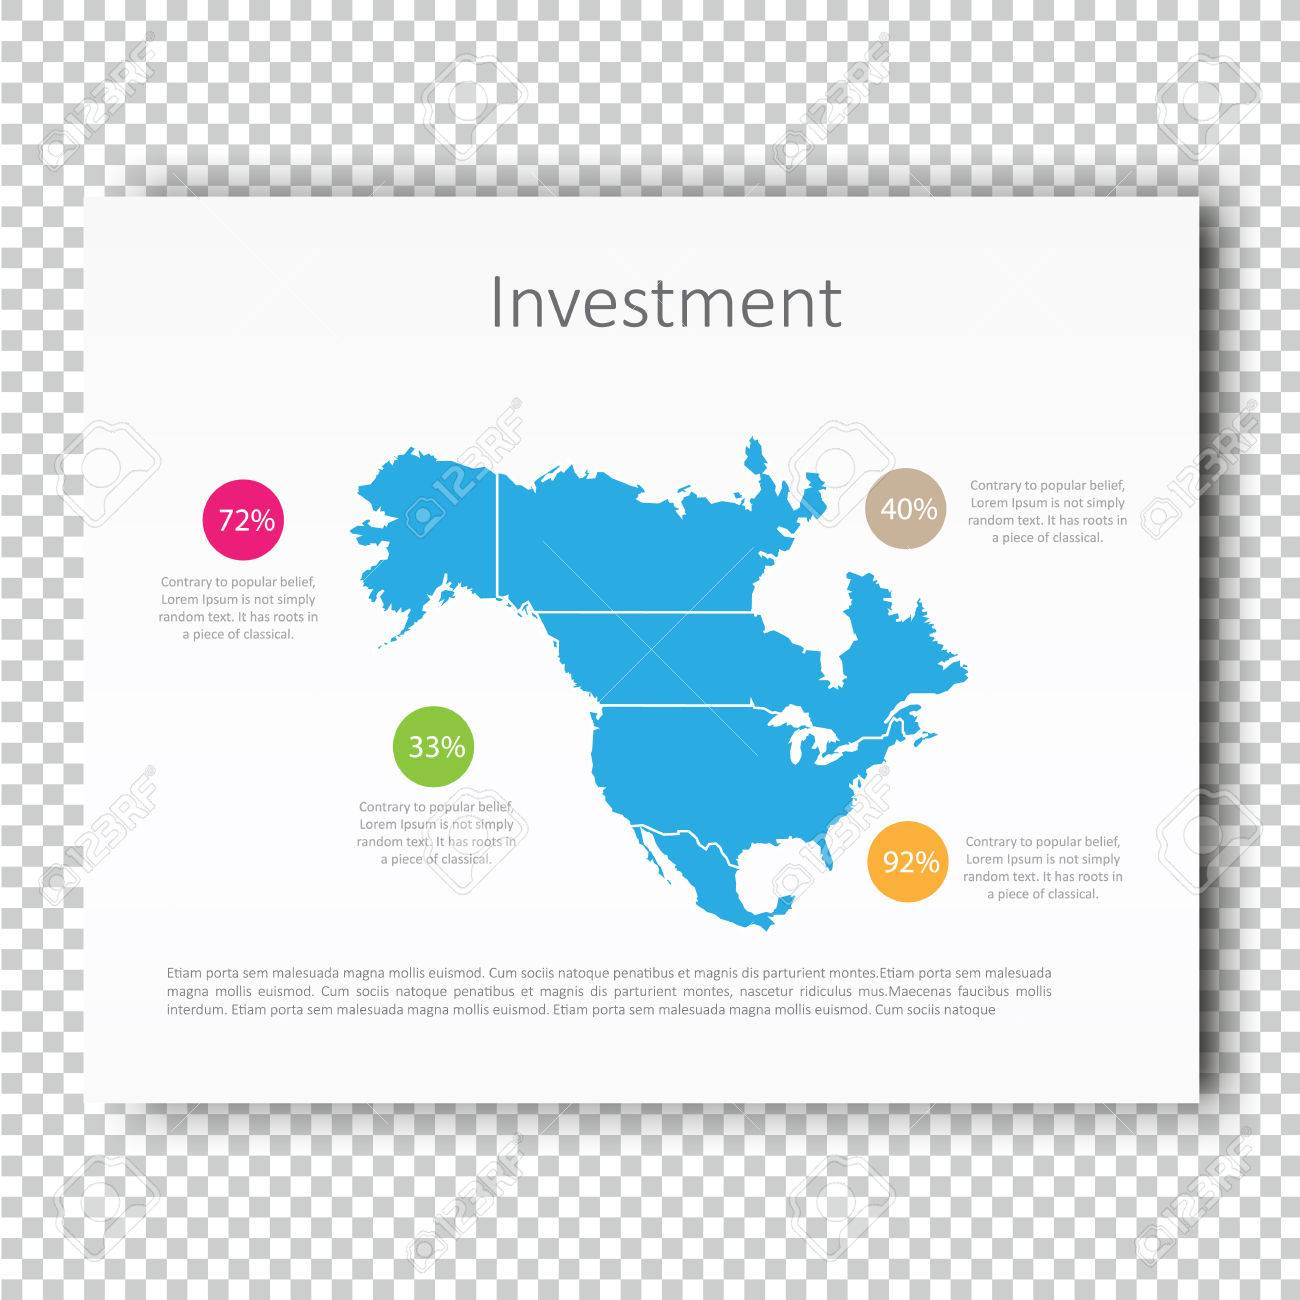 infographic investment north america map presentation template business layout design modern style vector